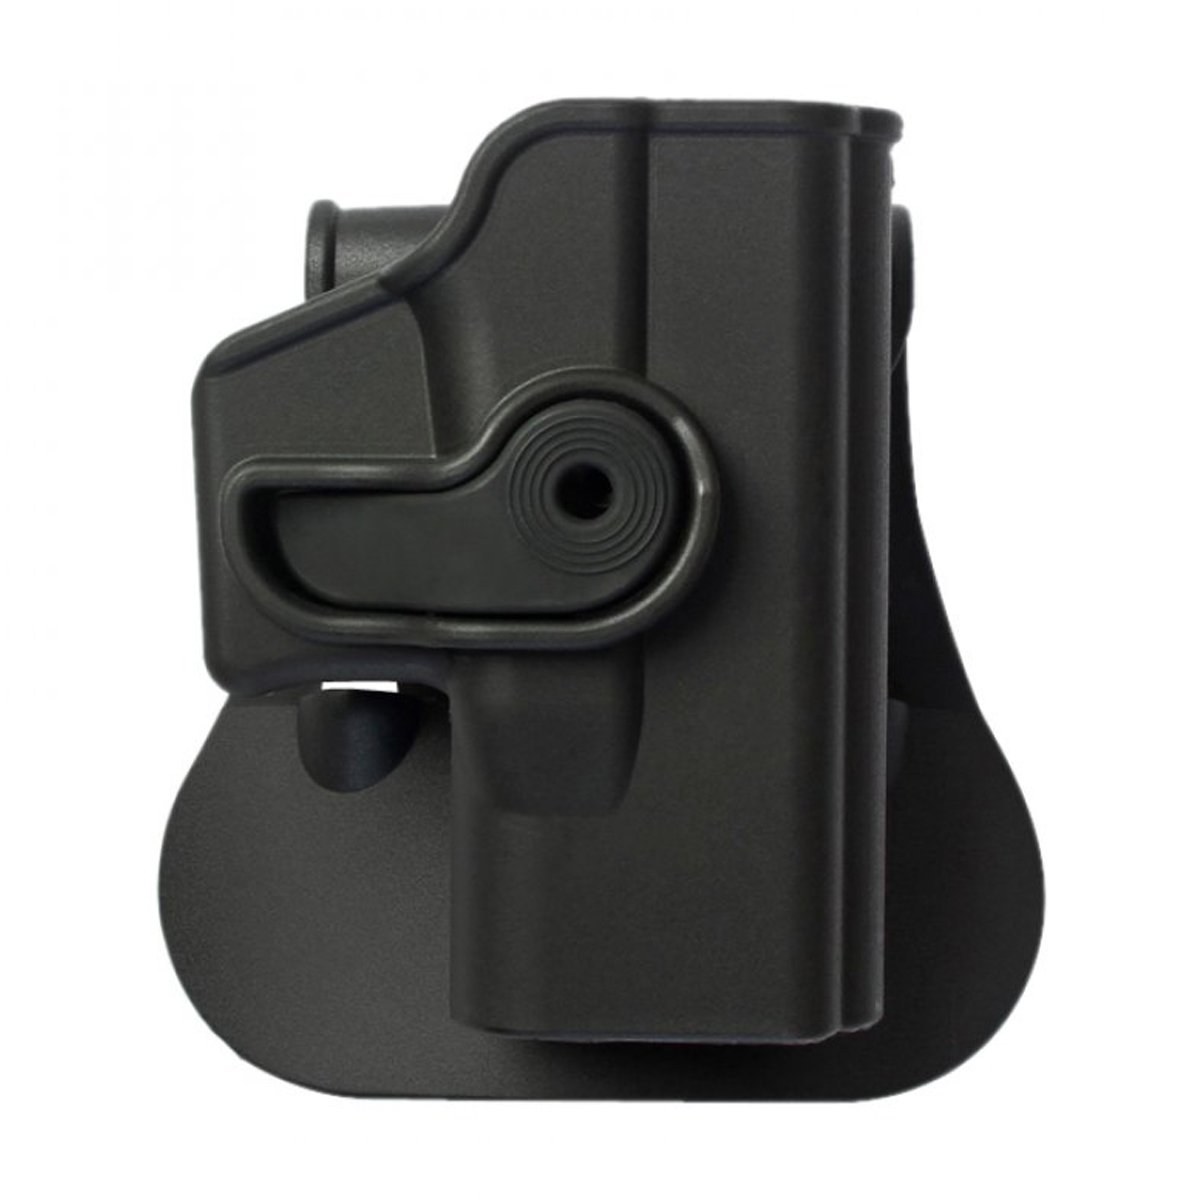 IMI MOLDED HOLSTER FOR G 23-26-27-28-33-36 GEN AIRSOFT SECURITY PISTOL